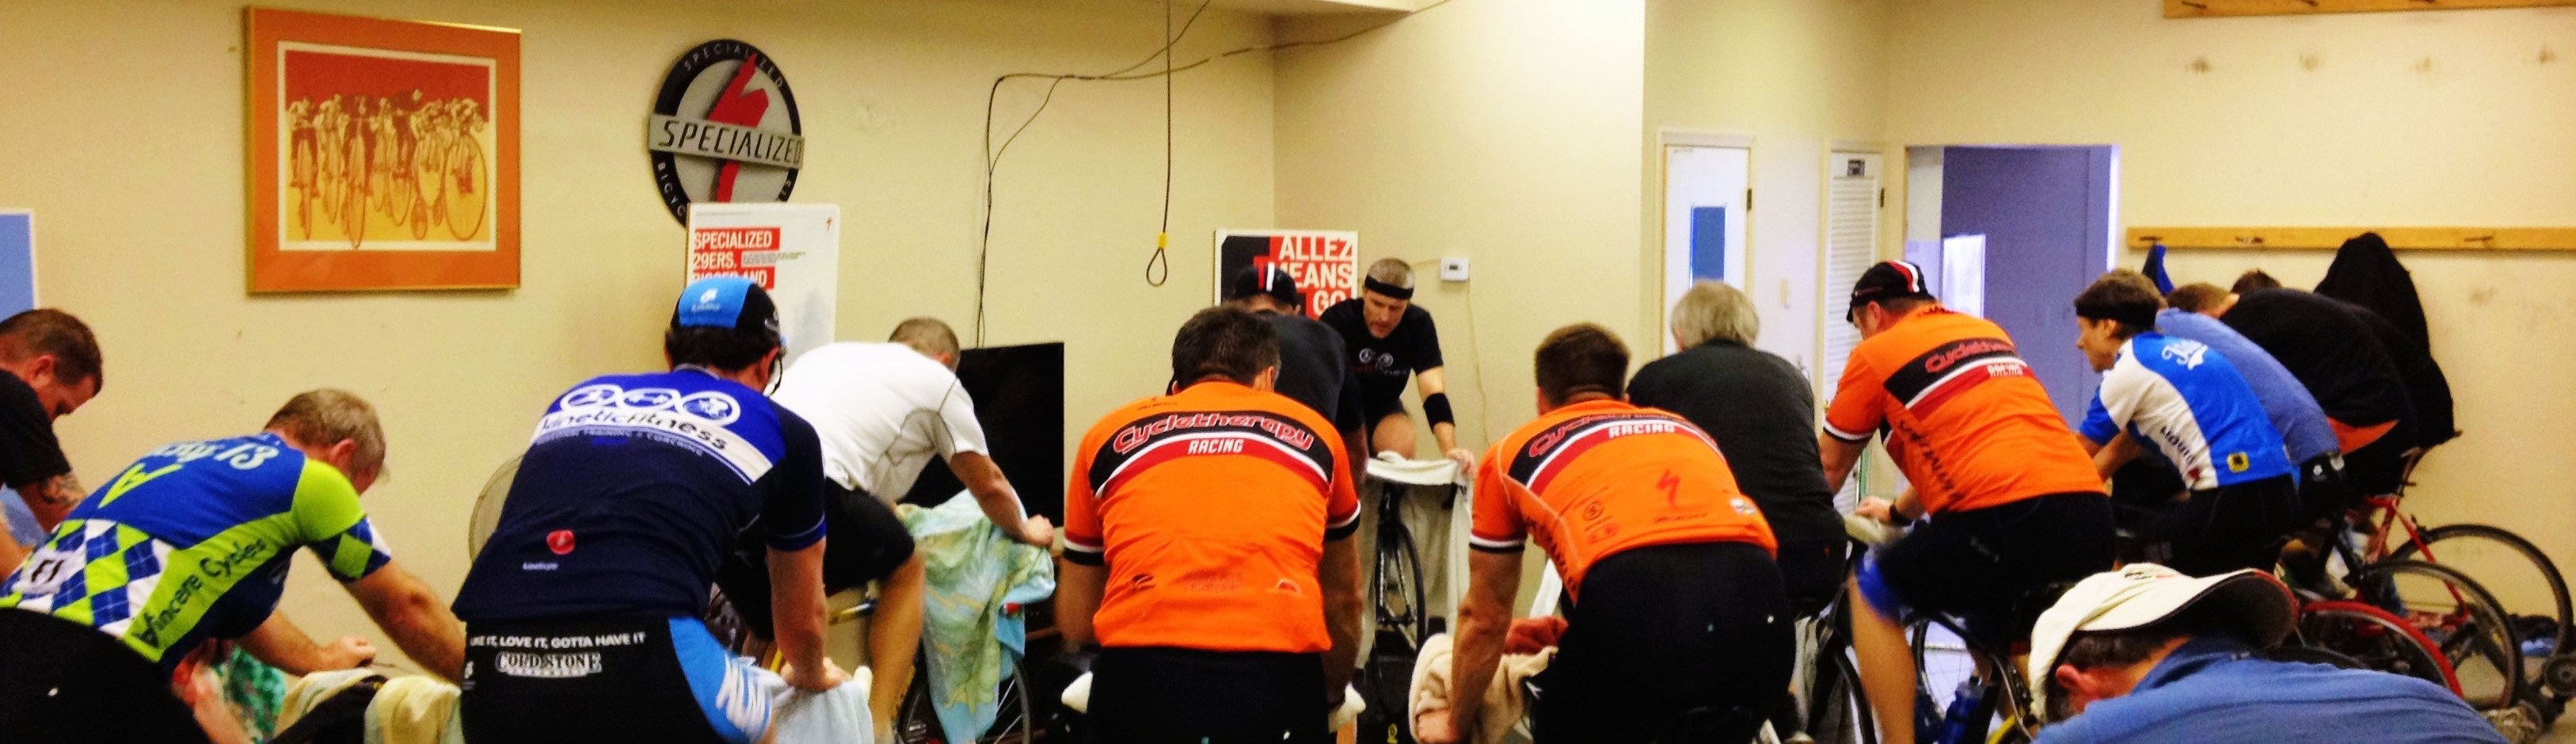 Cycletherapy Indoor Spin Class Winter 2016 – 2017